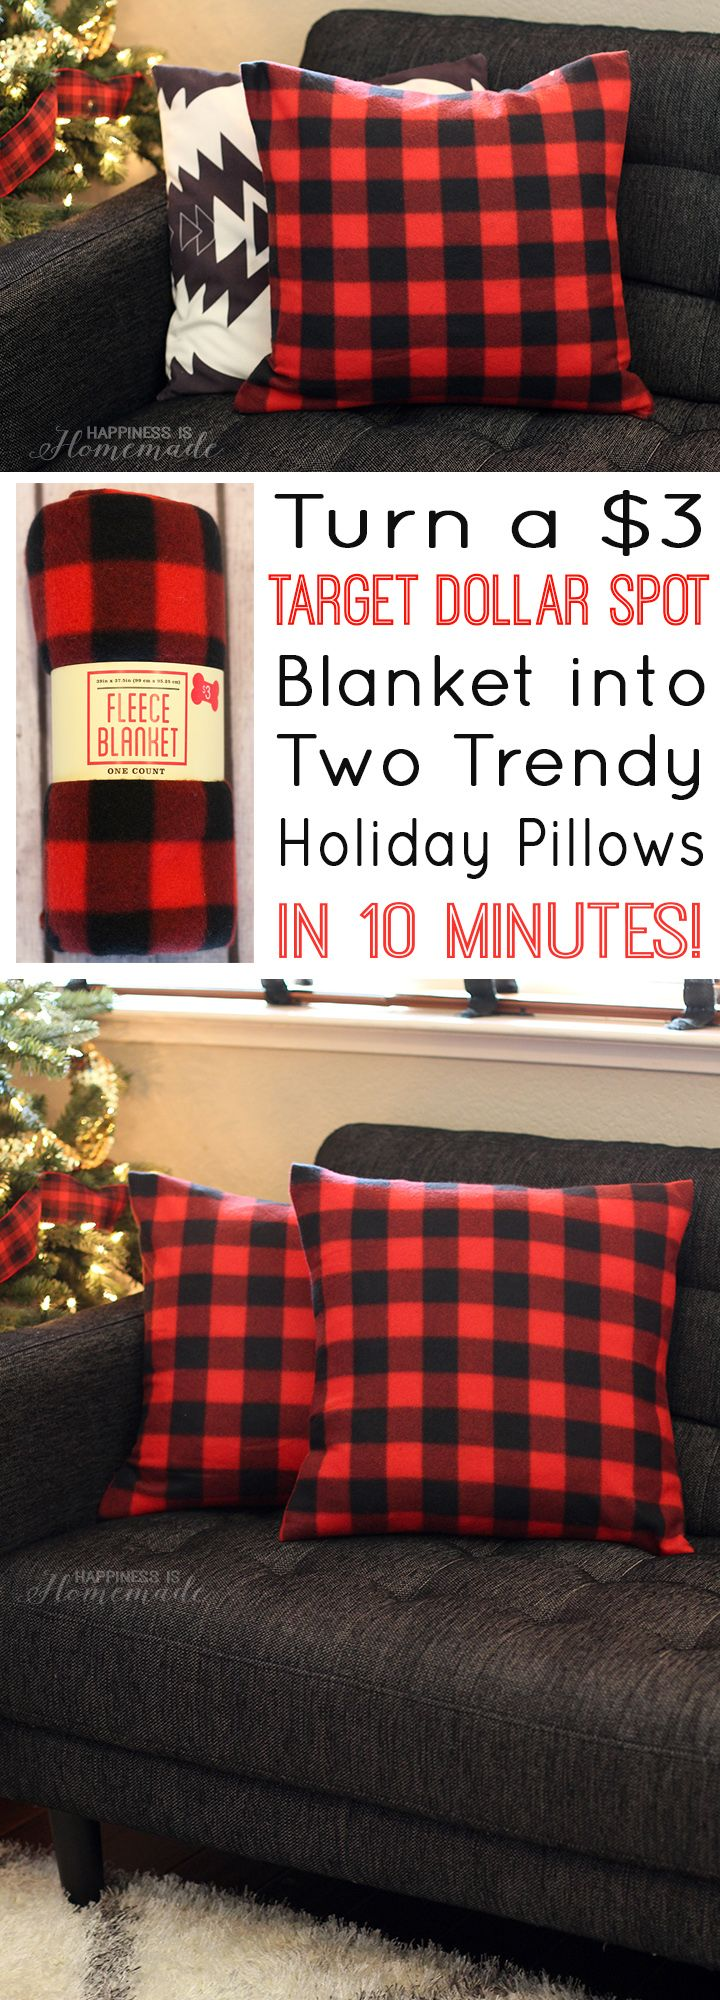 Buffalo Check Plaid Pillows from a $3 Target Blanket | DIY Fun Tips